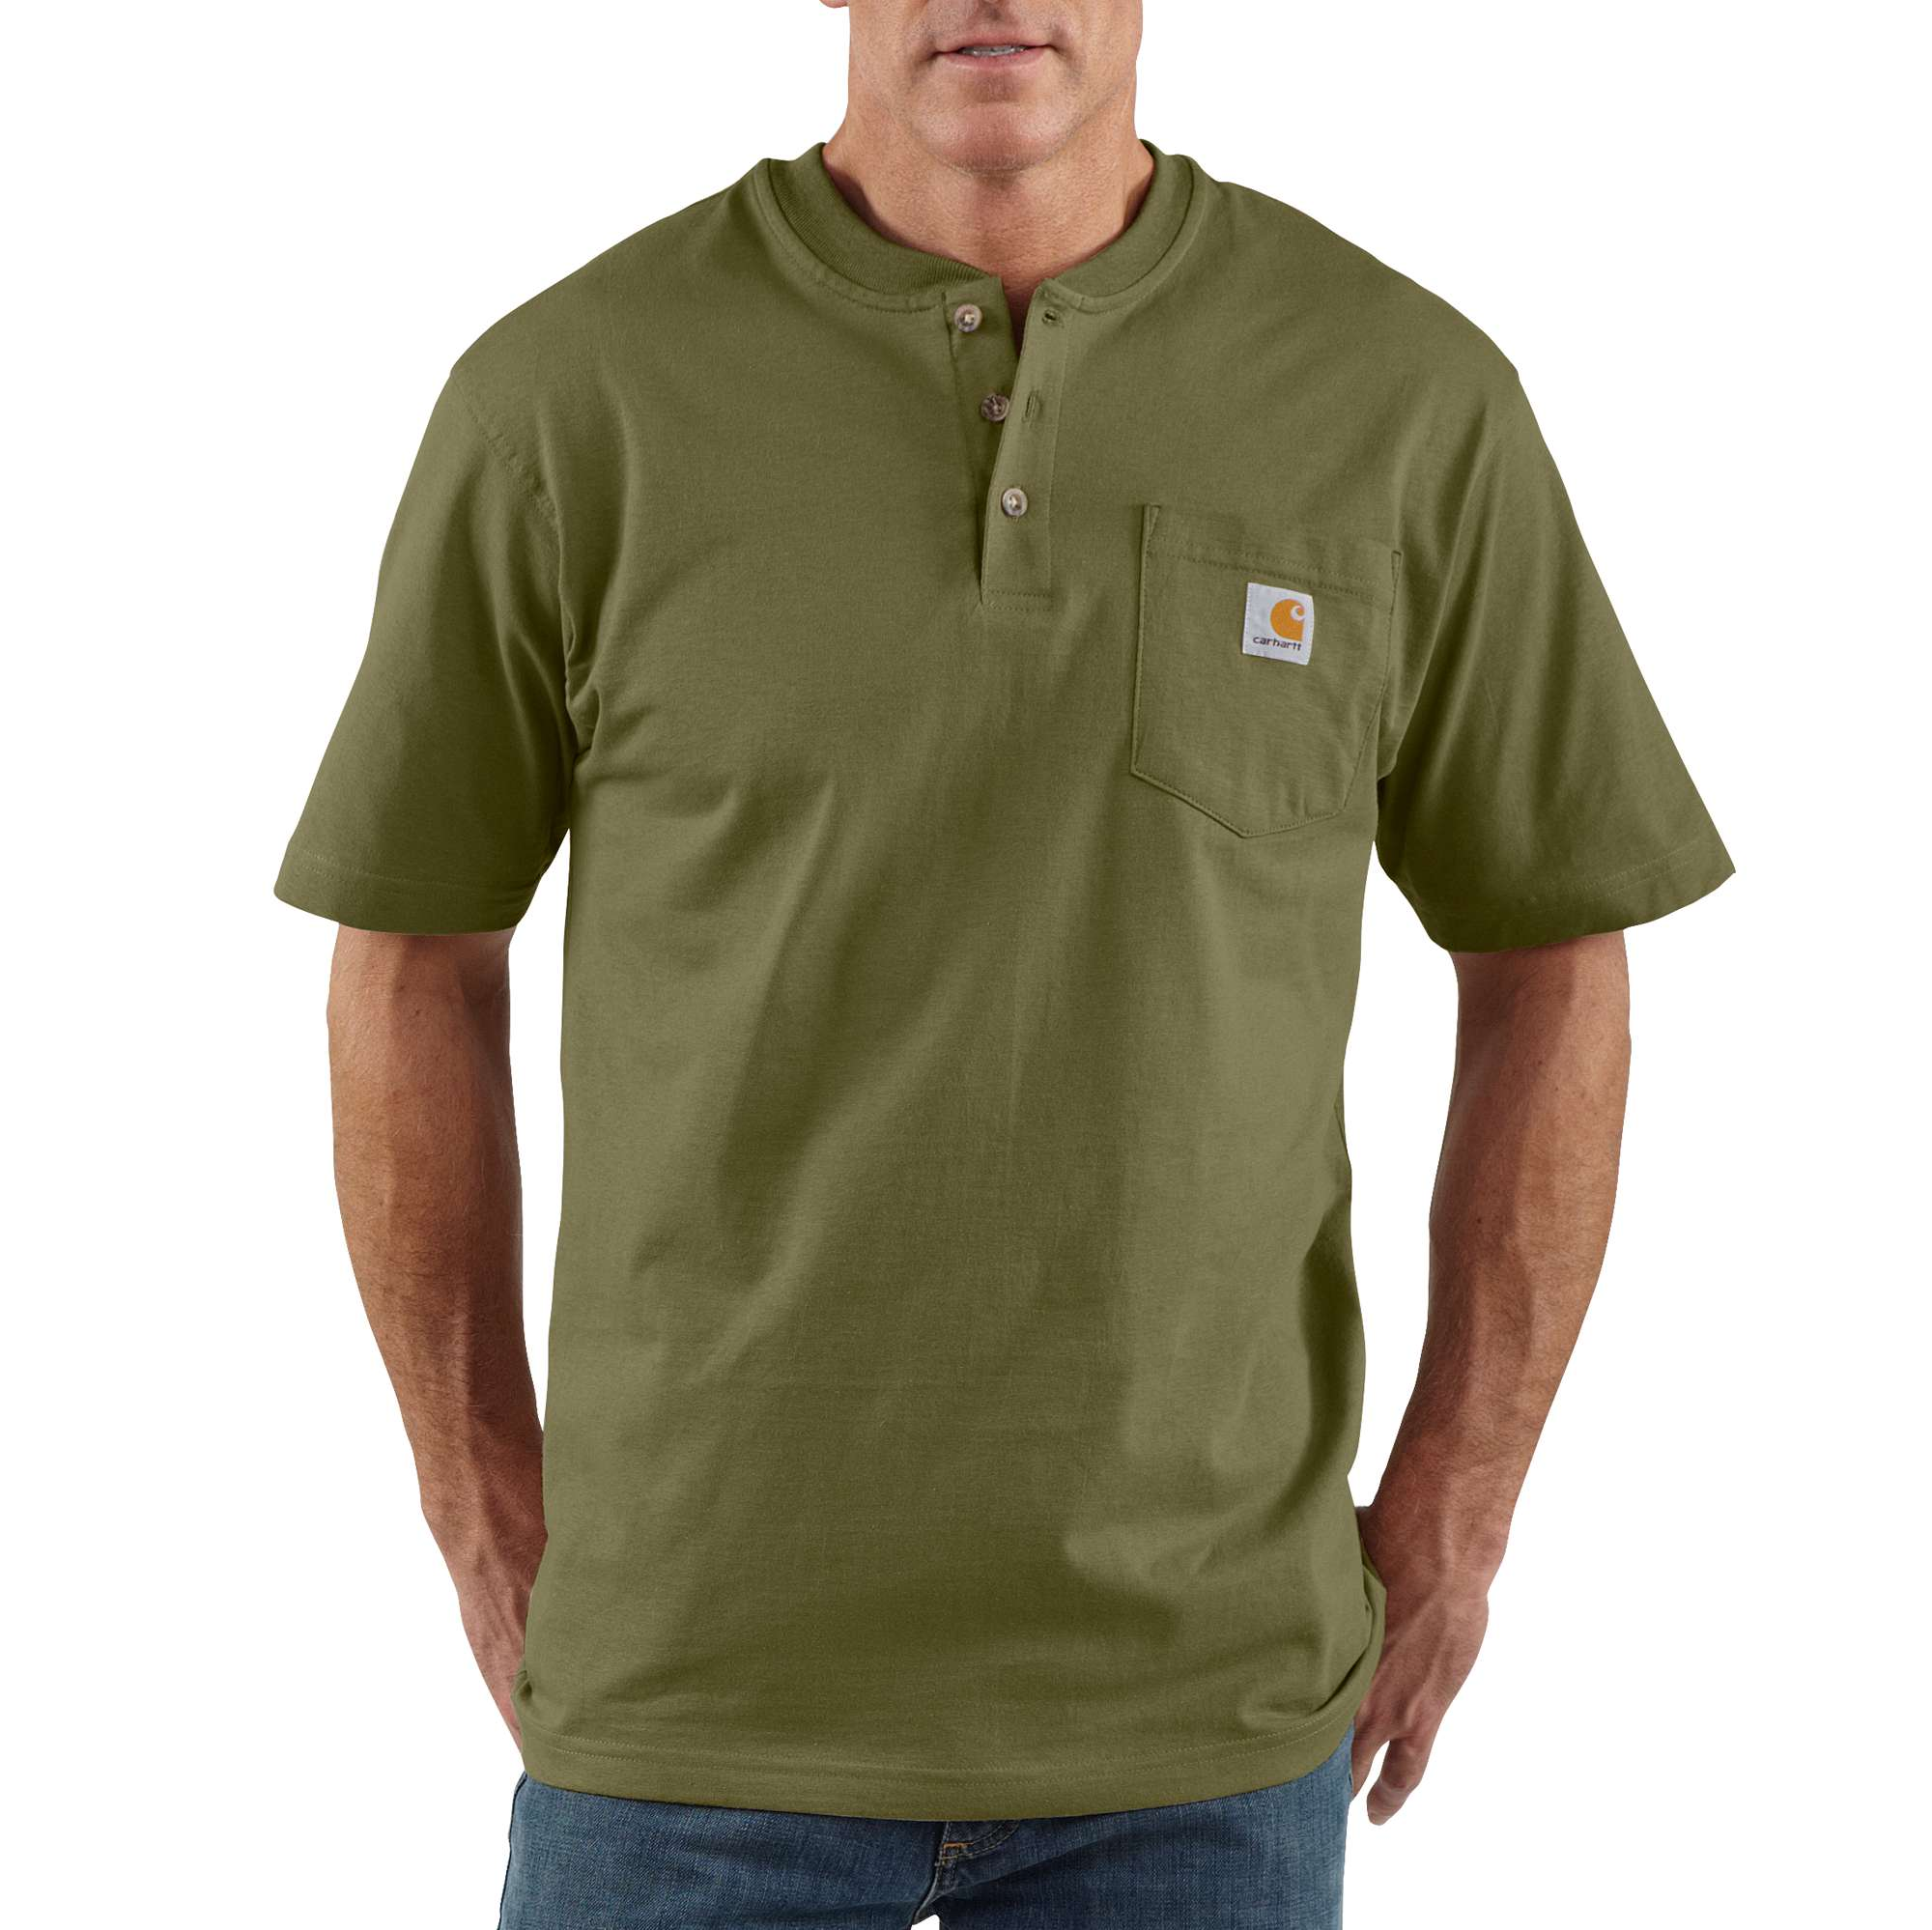 Carhartt Workwear Short-Sleeve Henley T-Shirt